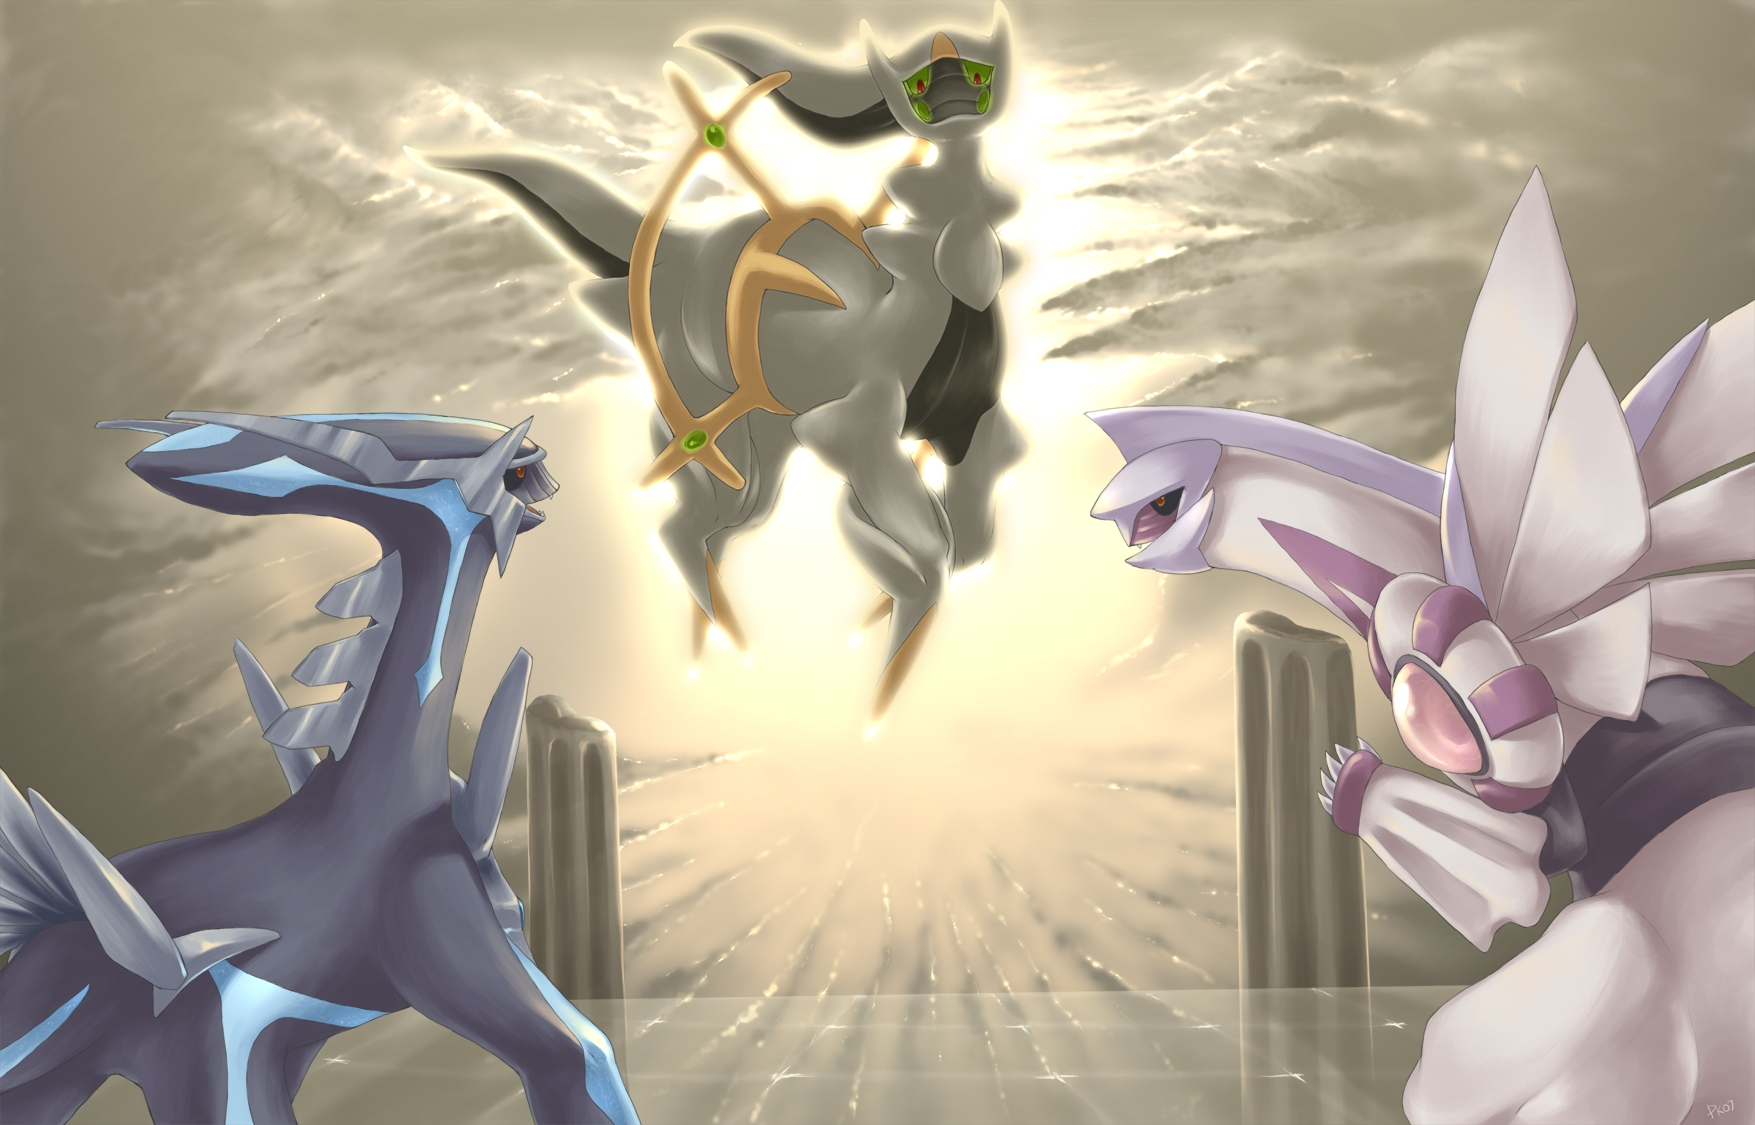 Even though I like Mewtwo a lot more than Arceus. I think Arceus is ...